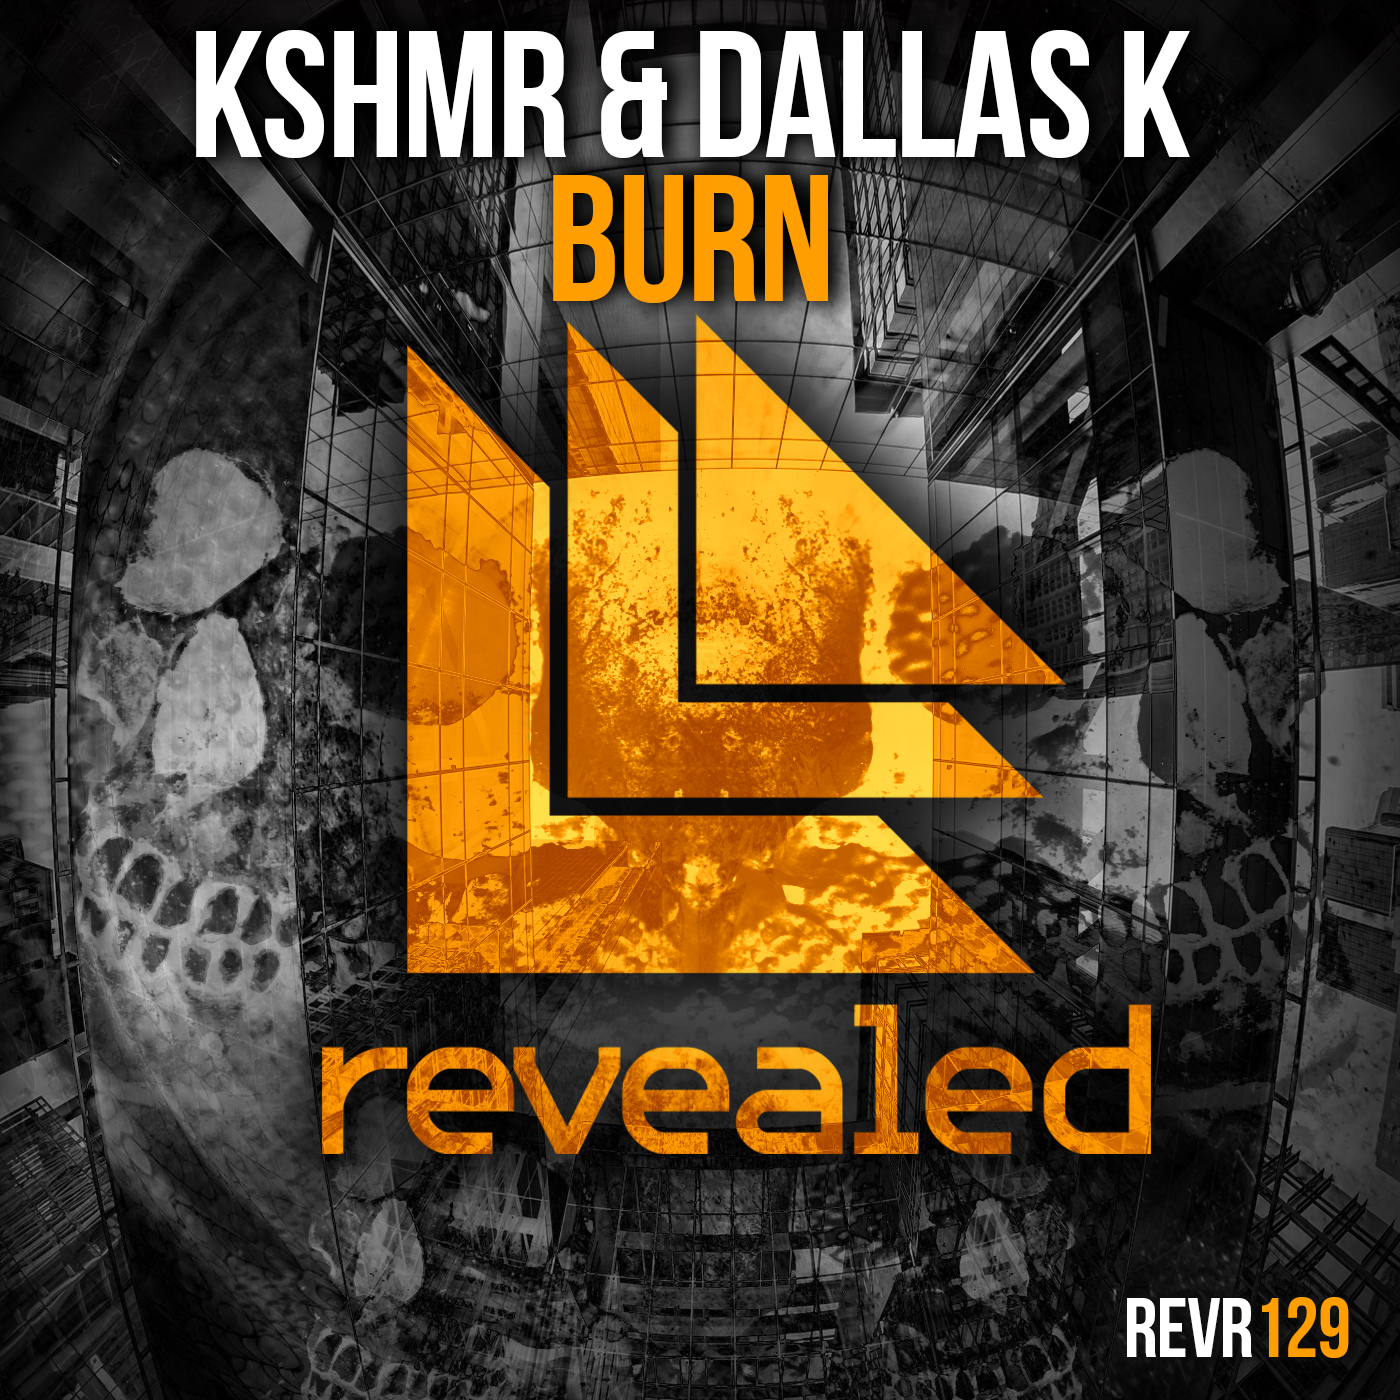 KSHMR & Dallas K on Splice